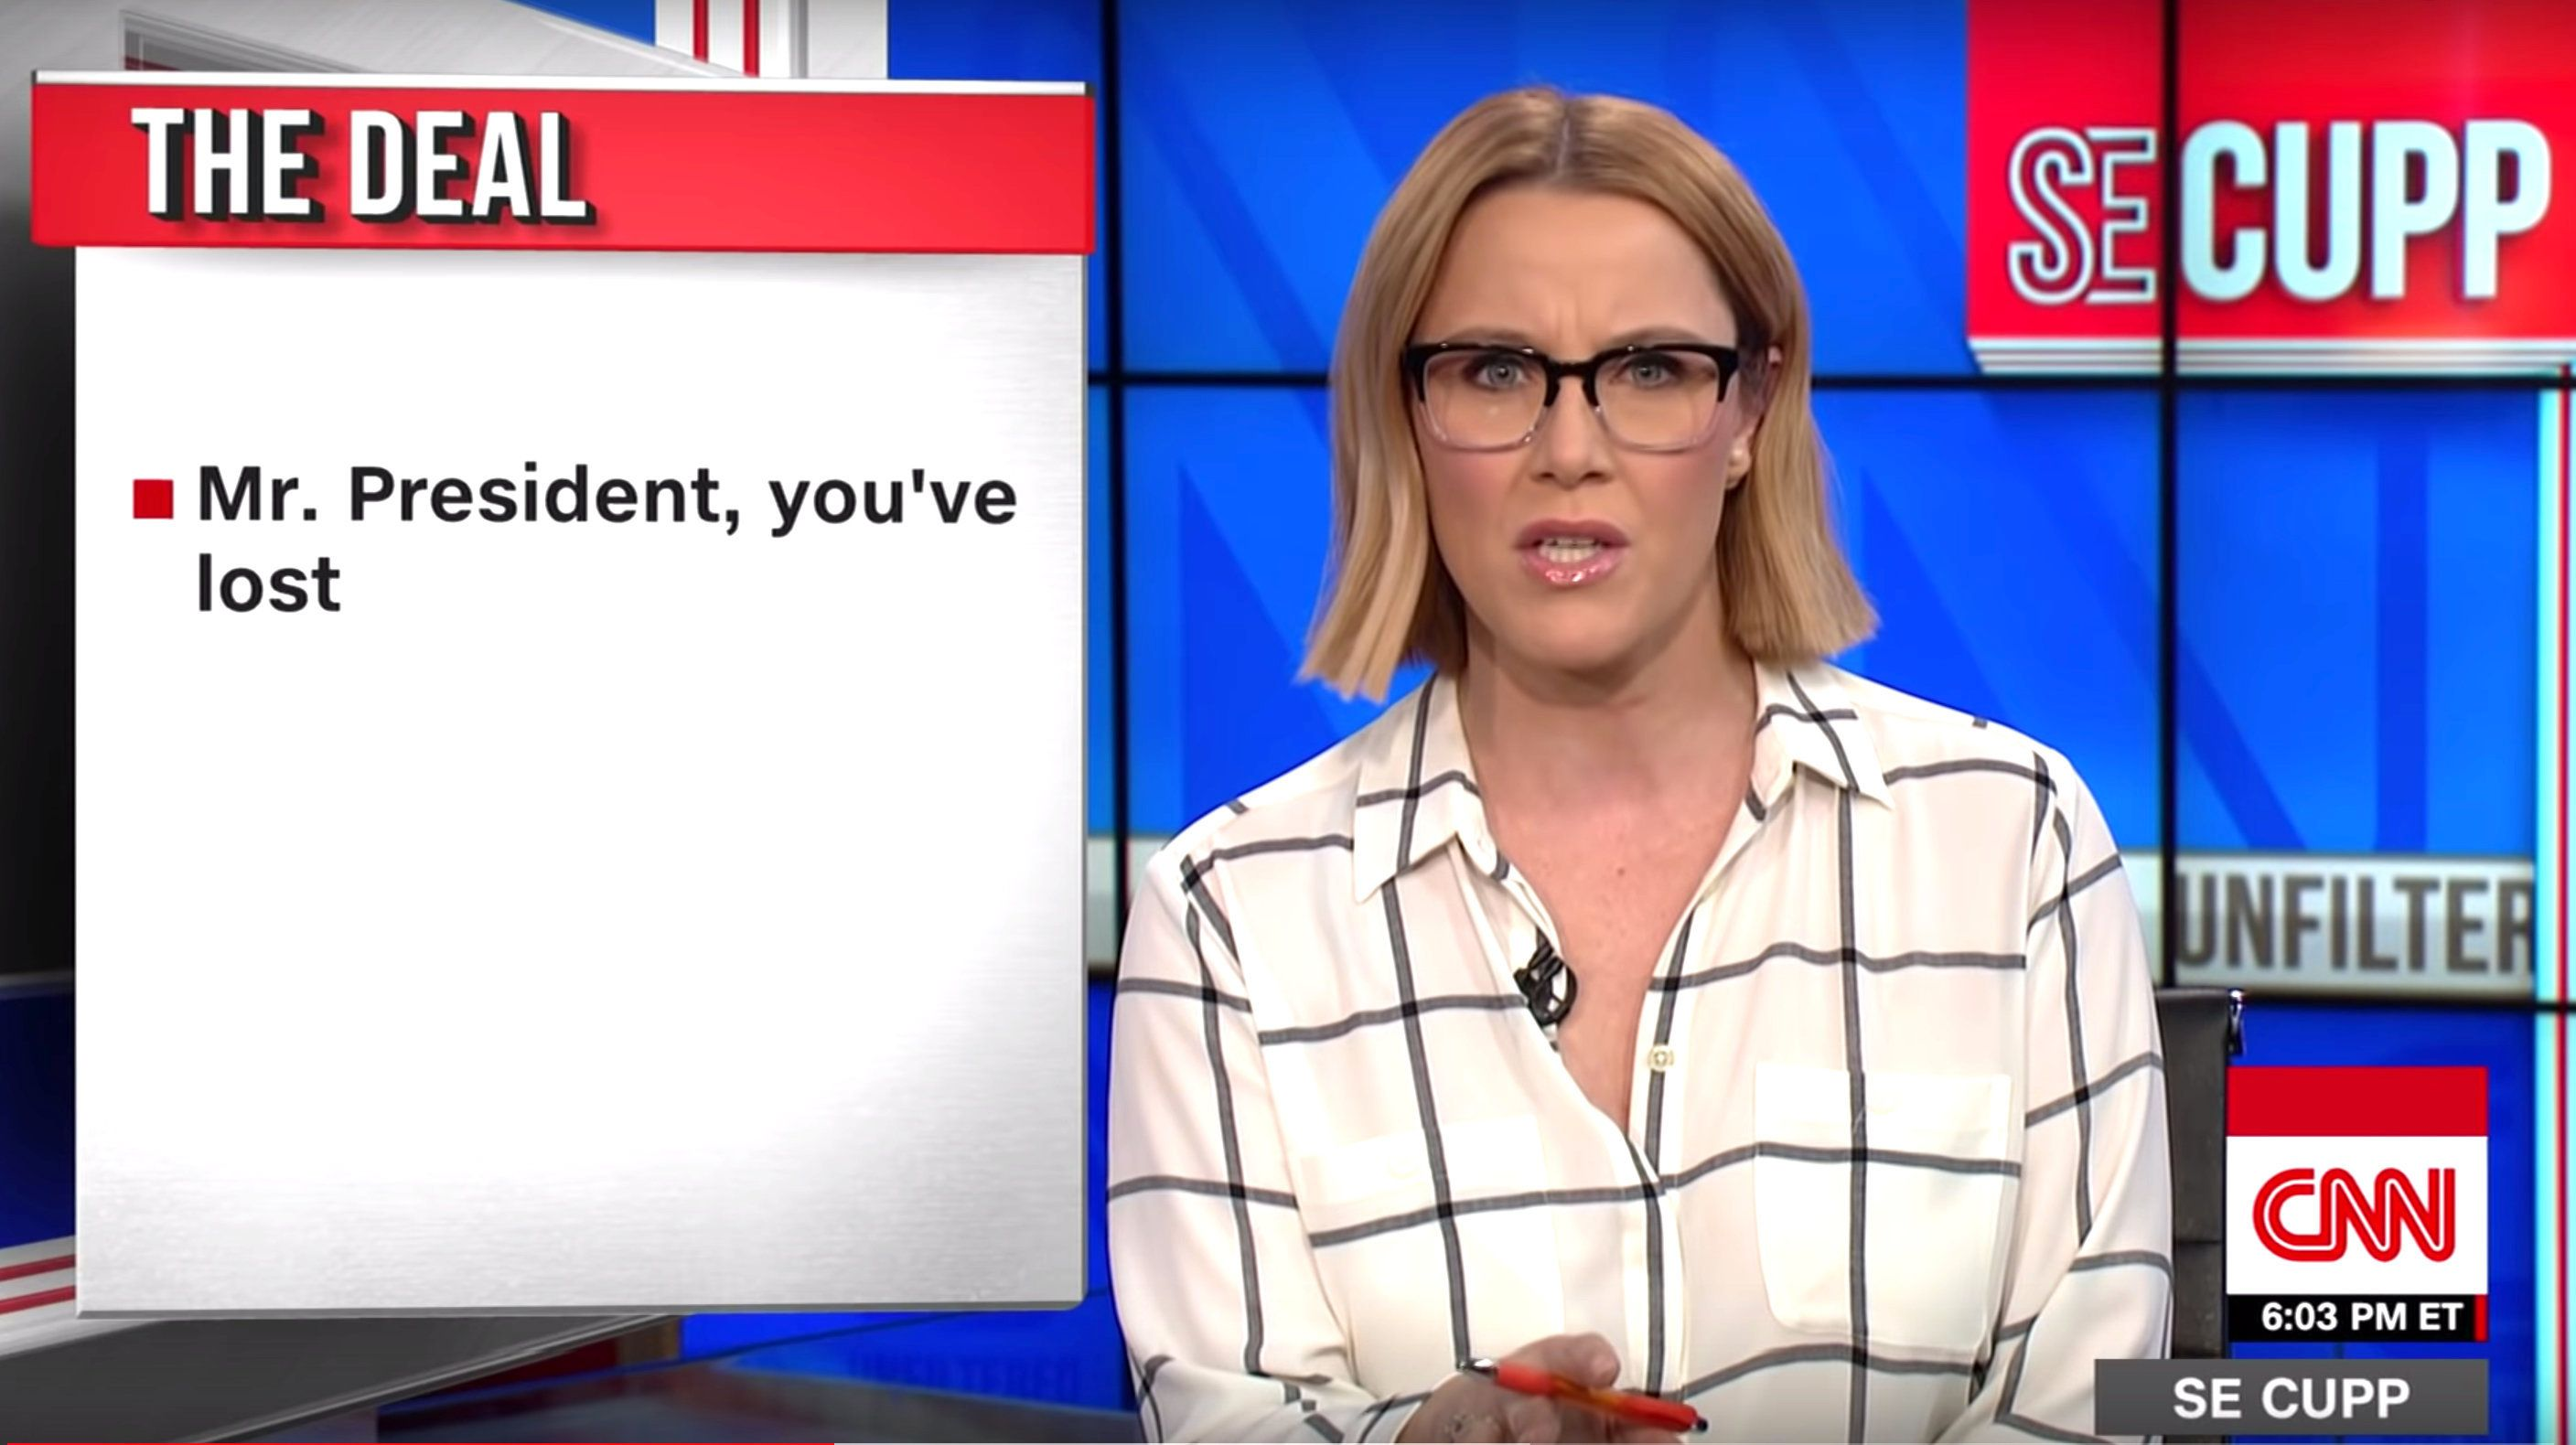 Westlake Legal Group 5c3af6cd24000066009f98f0 Conservative S.E. Cupp Tells Trump To Give Up: 'This Is What Losing Looks Like'